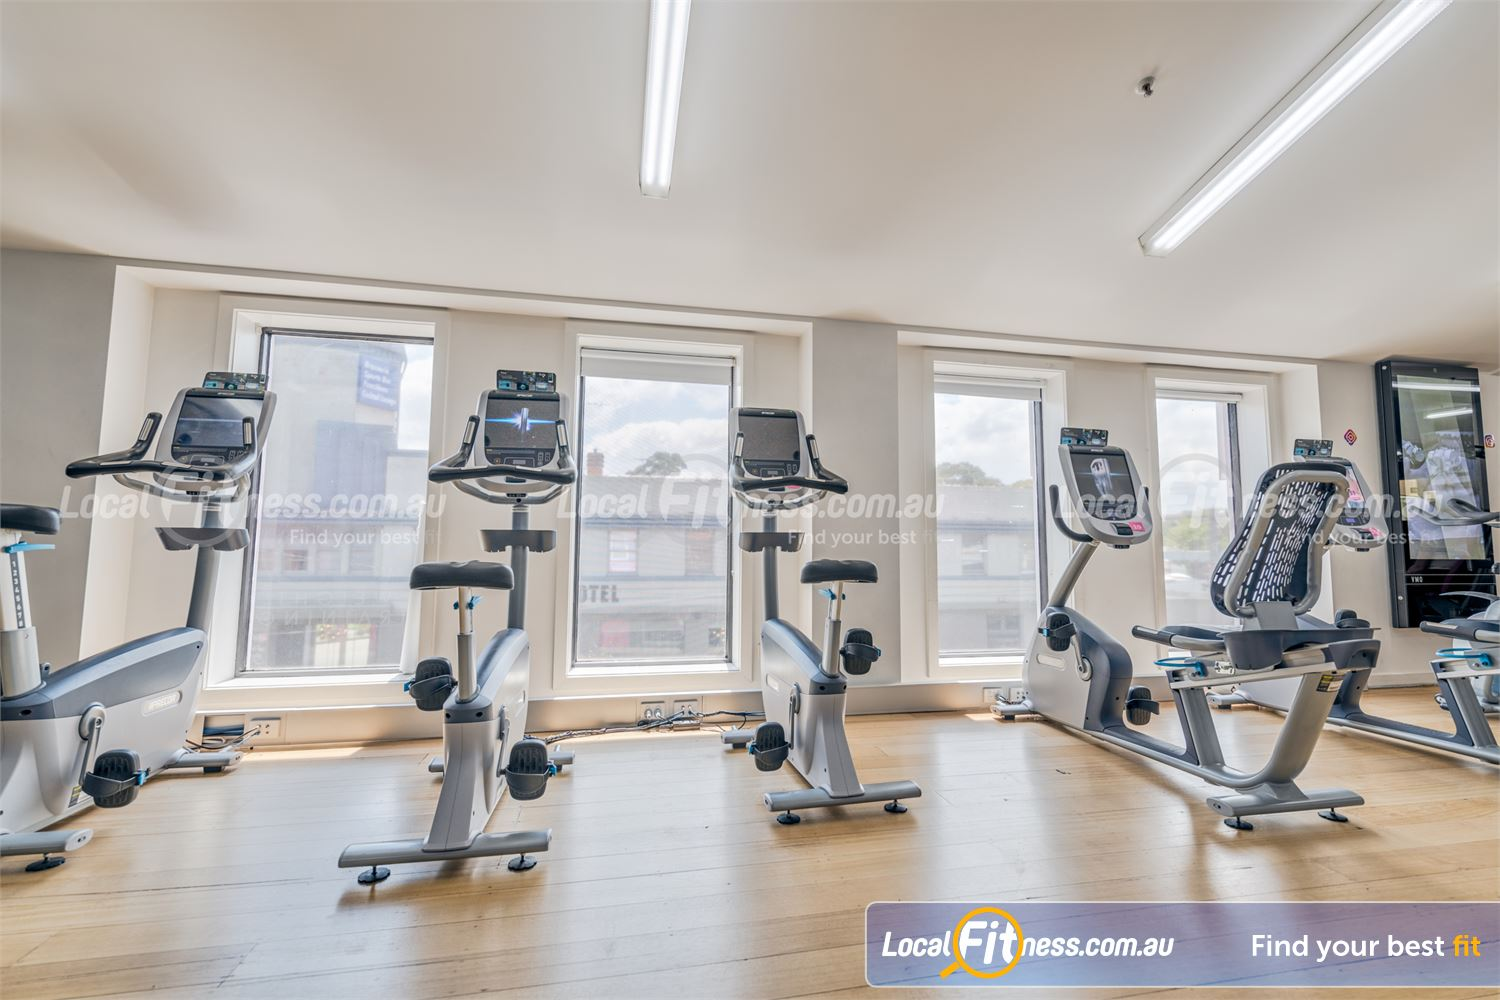 Fernwood Fitness Near Canterbury Our Fernwood Camberwell womens gym provides sweeping views of Camberwell Rd.